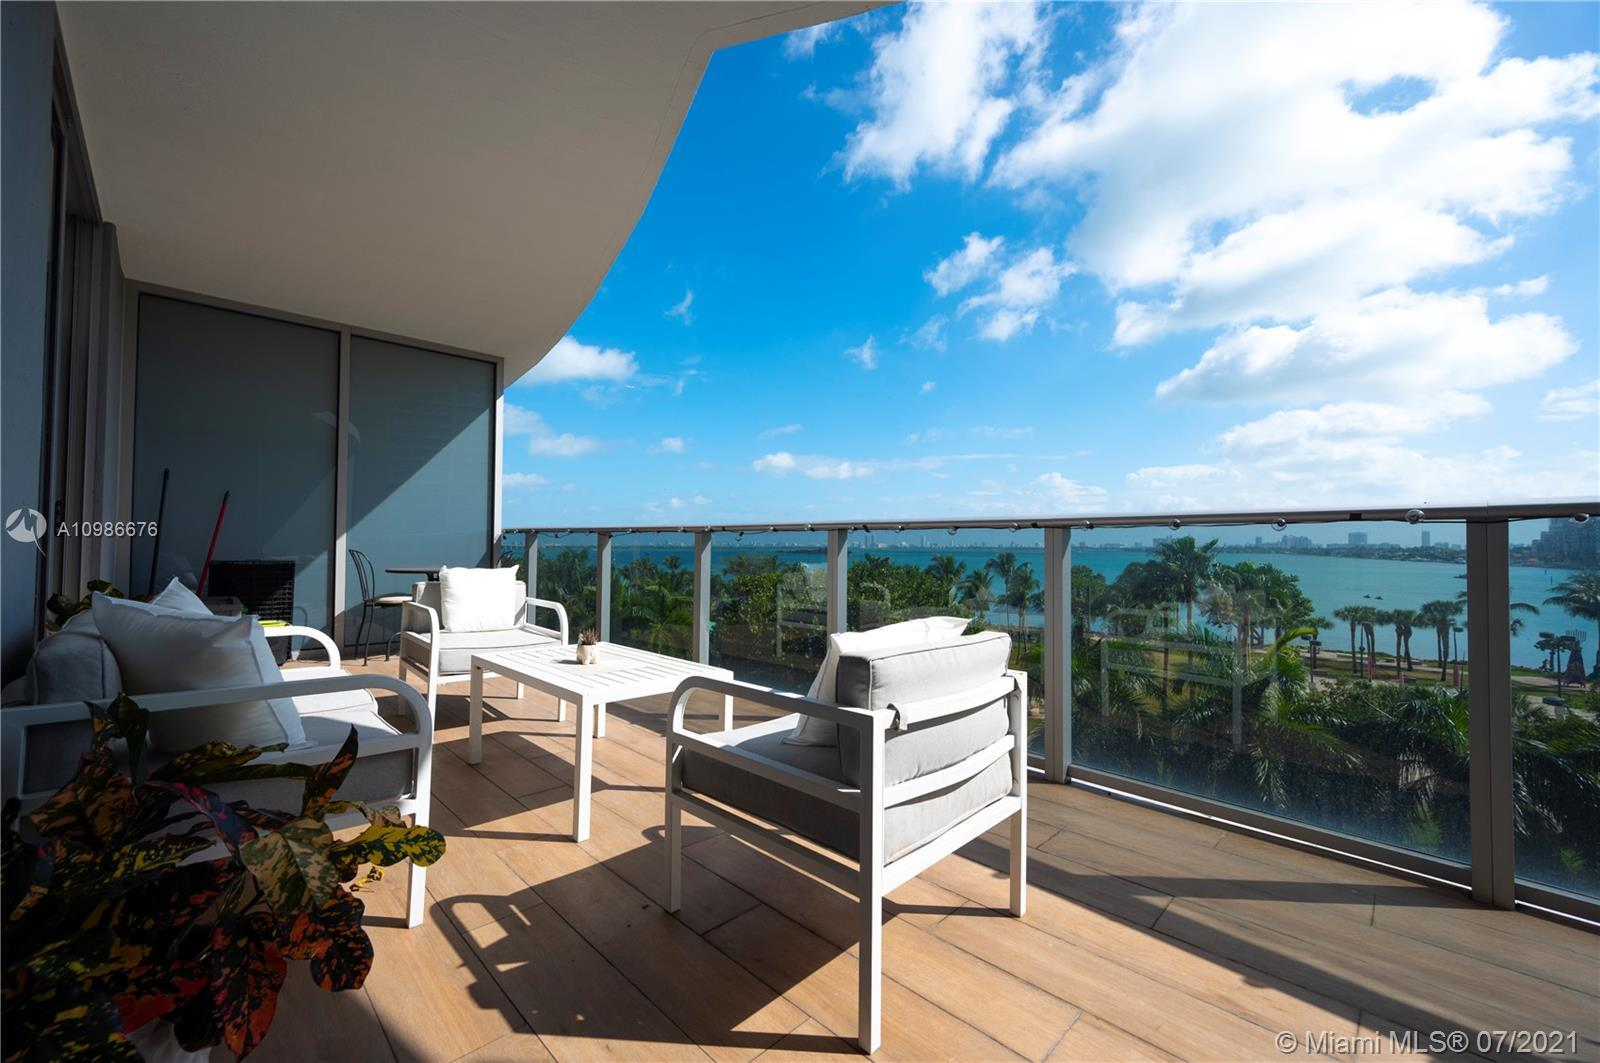 PRICED TO SELL ! CASH ONLY OFFERS This SPECTACULAR  but AFFORDABLE 1bed/1.5bath unit is one of the